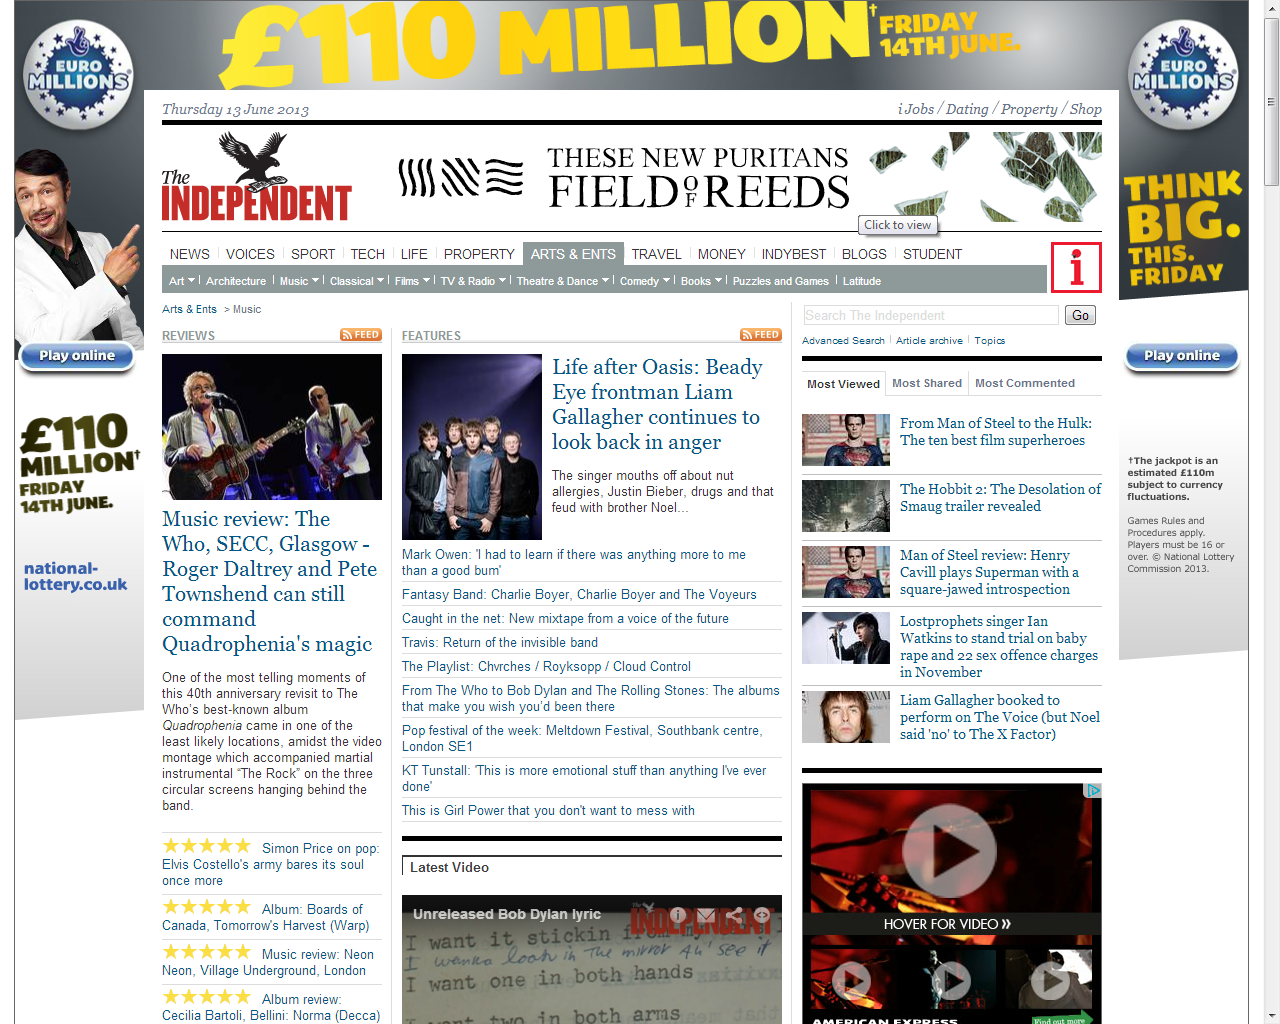 Independent.co.uk/music